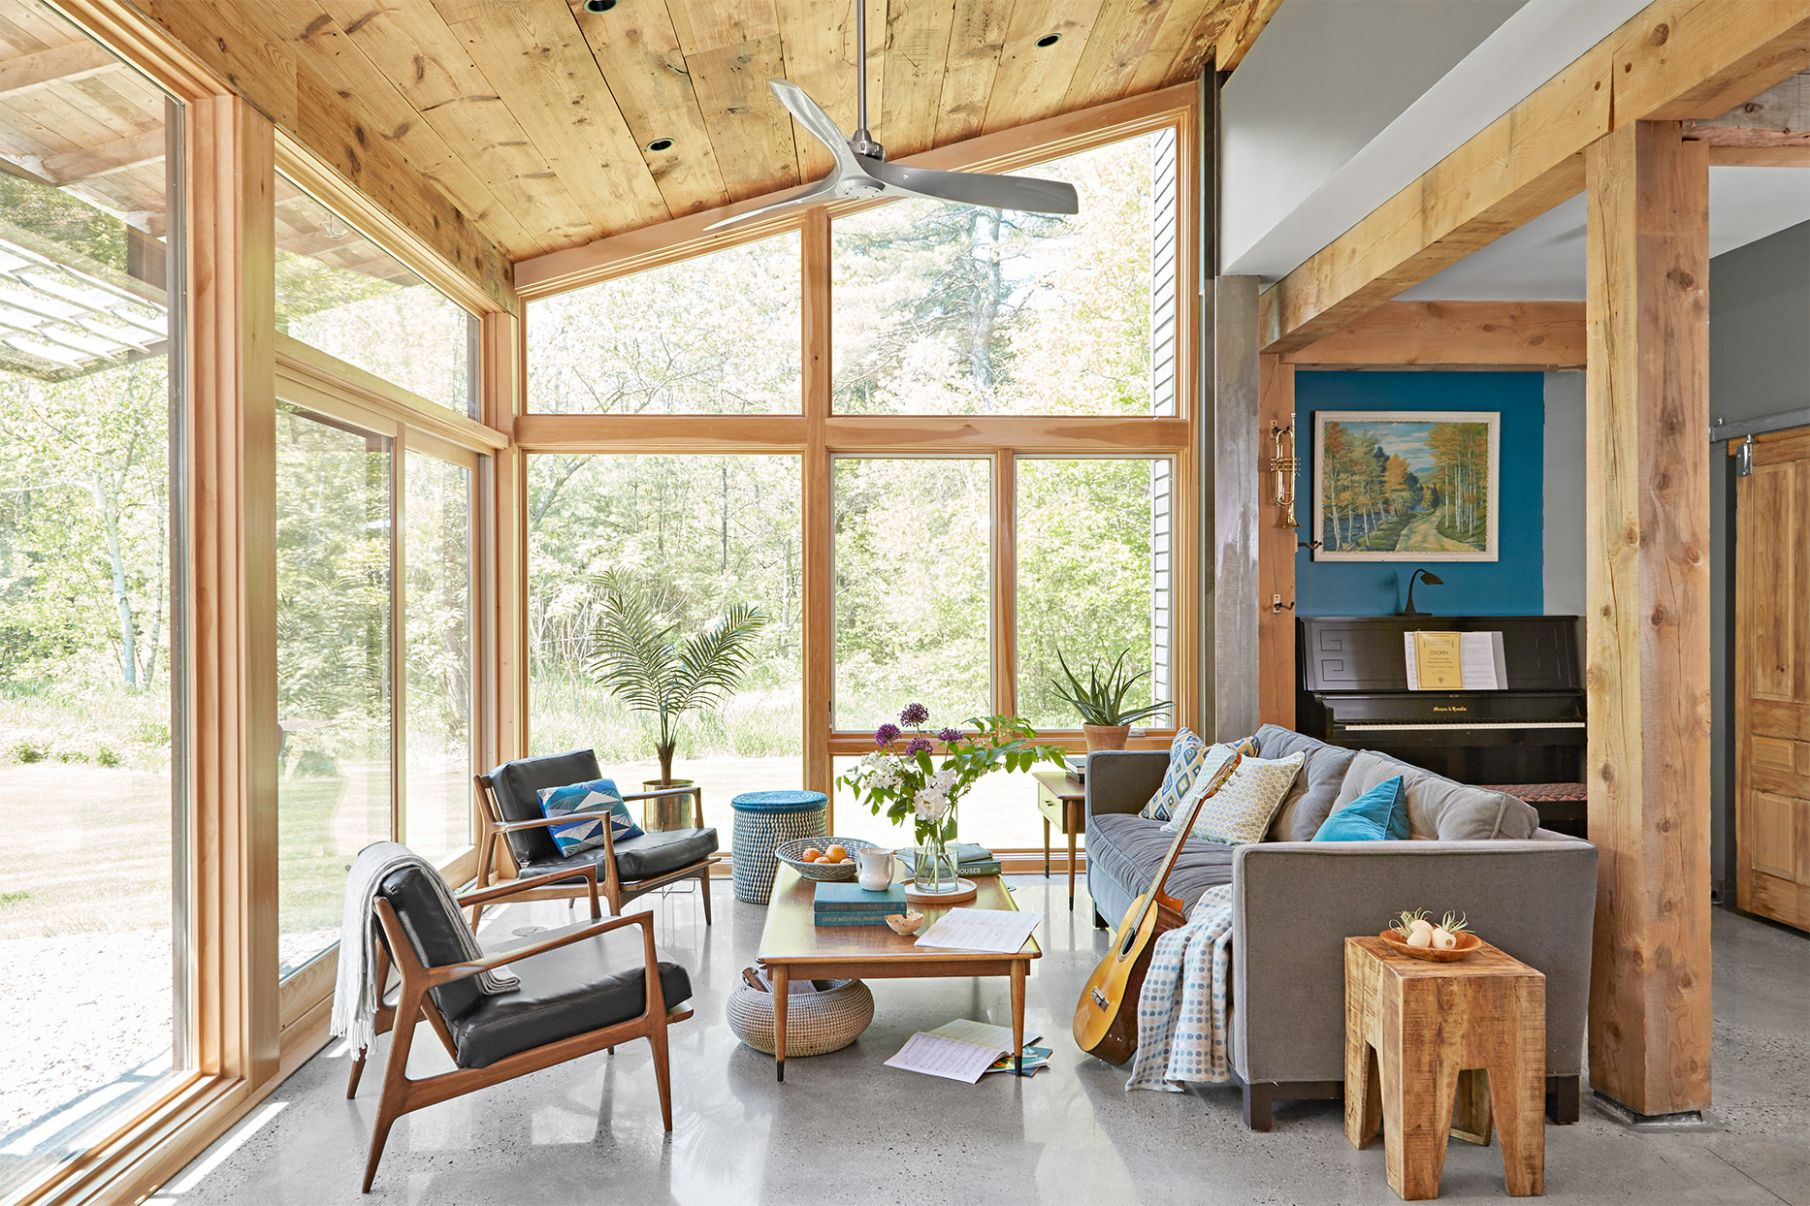 What to Know Before Adding a Sunroom | Better Homes & Gardens - sunroom ideas australia